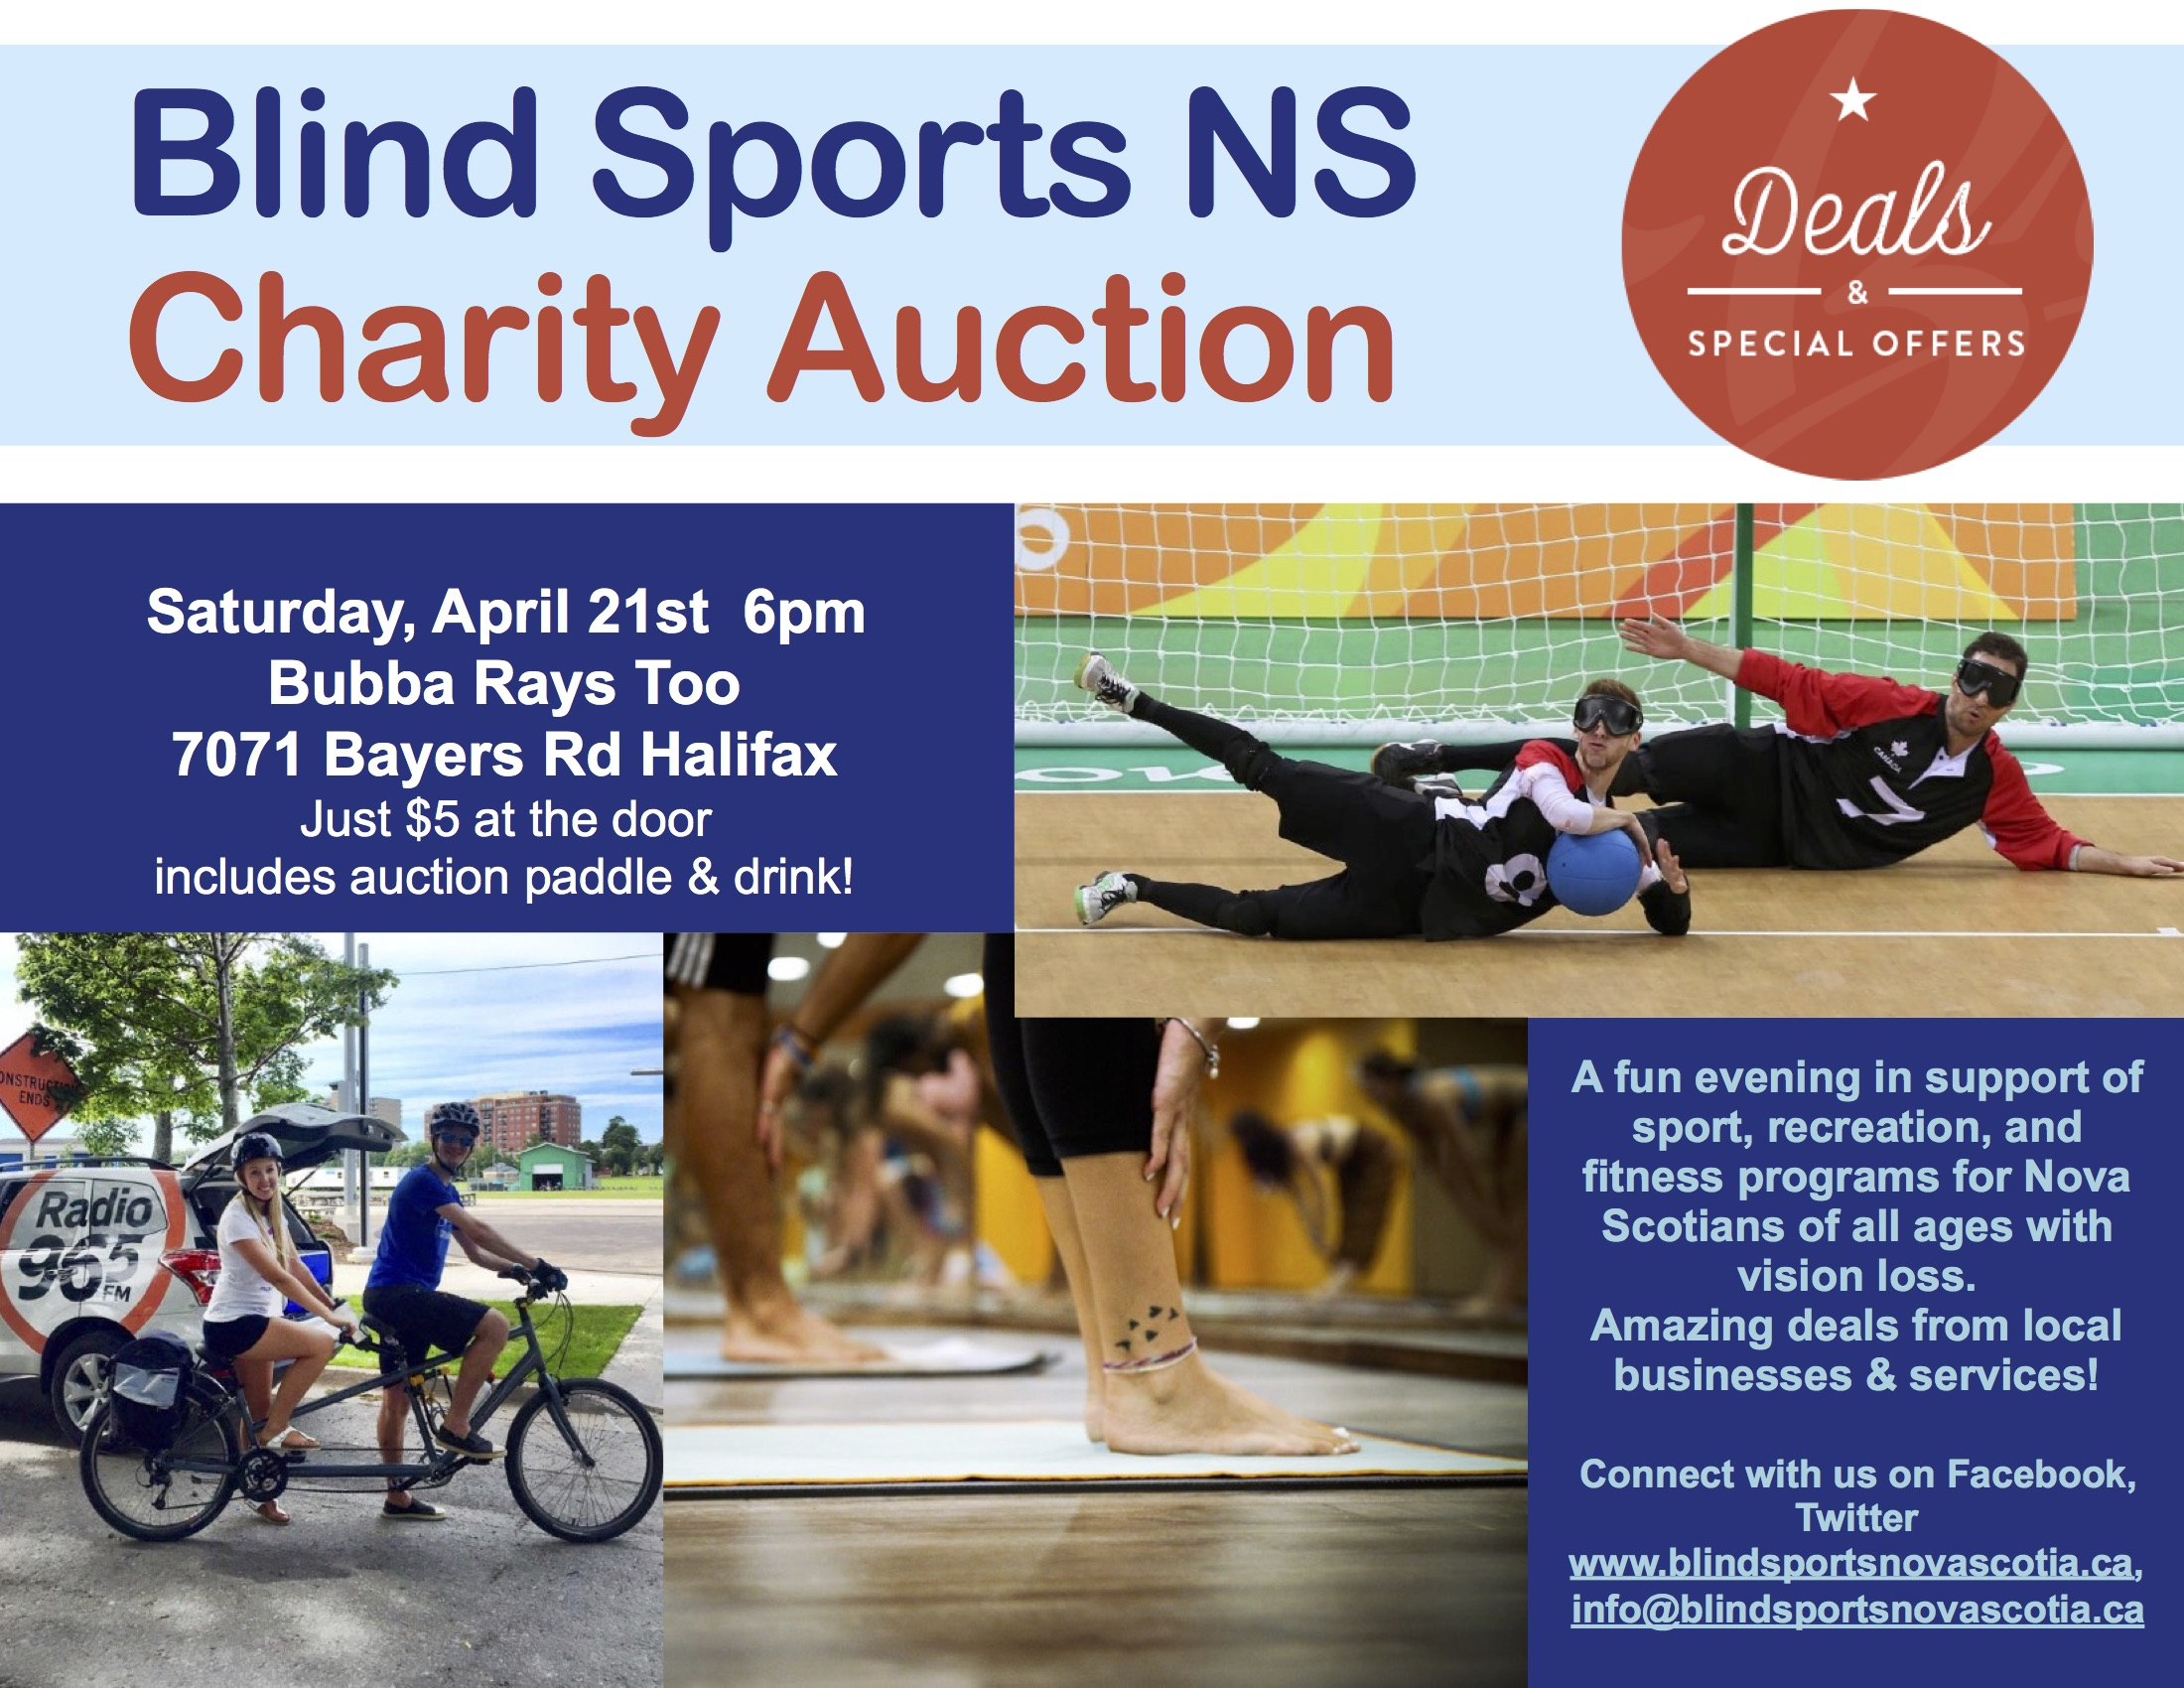 Poster Description: Blind Sports NS Charity Auction (Deal & Special Offers) Saturday, April 21st at 6pm Bubba Rays Too 7071 Bayers Rd Just 5$ at the door includes auction paddle & drink  Images include 2 goalball players blocking shot, a pair on a tandem bike, and a group participating a group fitness class with mats A fun evening in support of sport, creation, and fitness programs for Nova Scotians of all ages with visionless. Amazing deals from local businesses & services. Connect with us on Facebook, Twitter, blindsportsnovascotia.ca, info@blindsportsnovascotia.ca